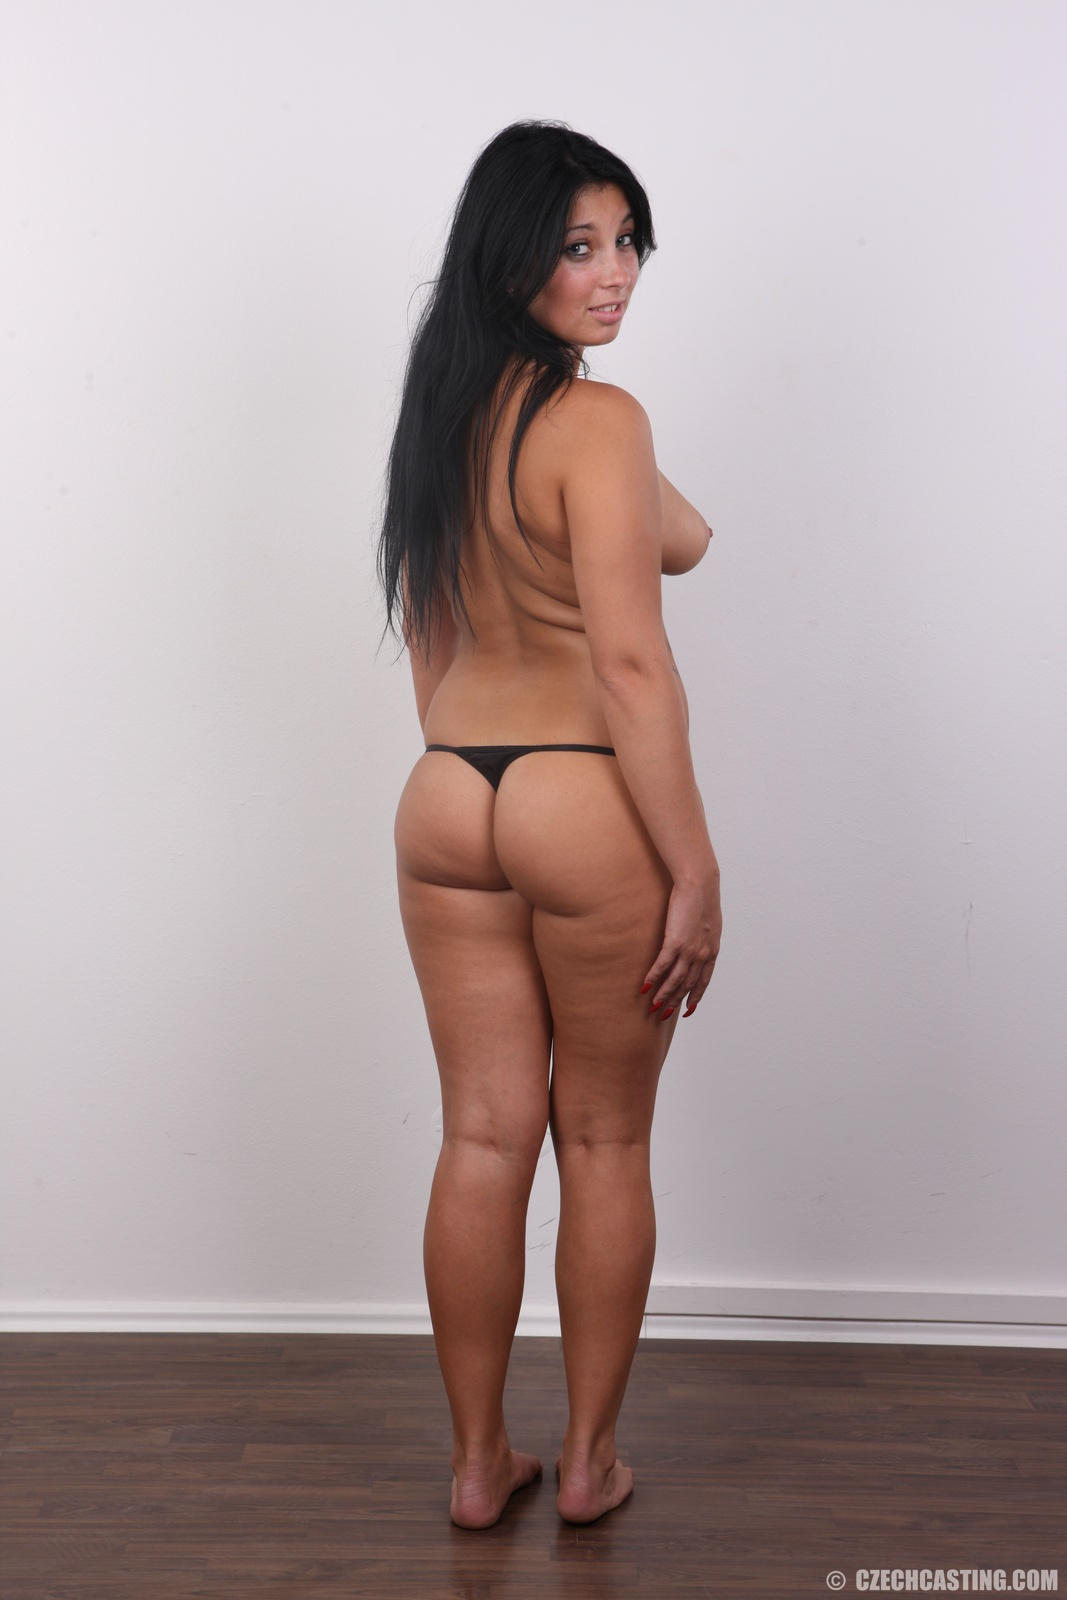 cz escort call girl bergen